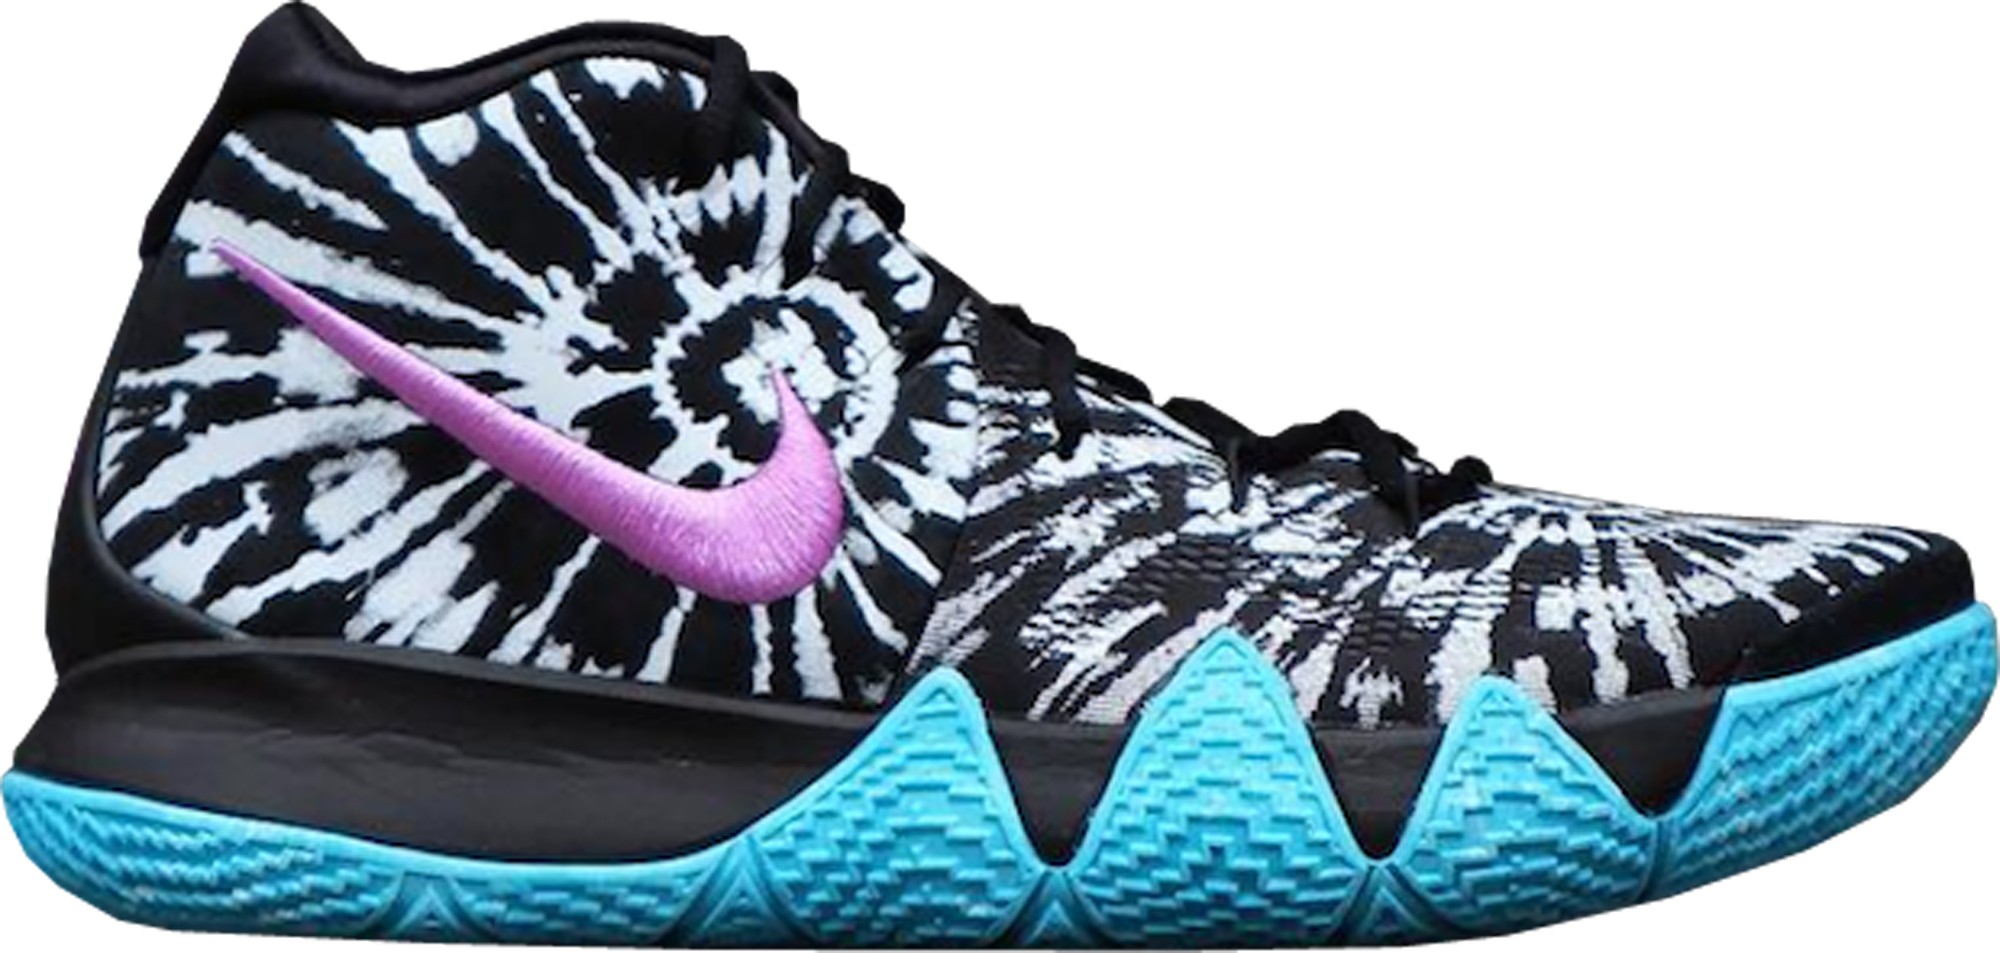 Kyrie 4 All-Star (2018)